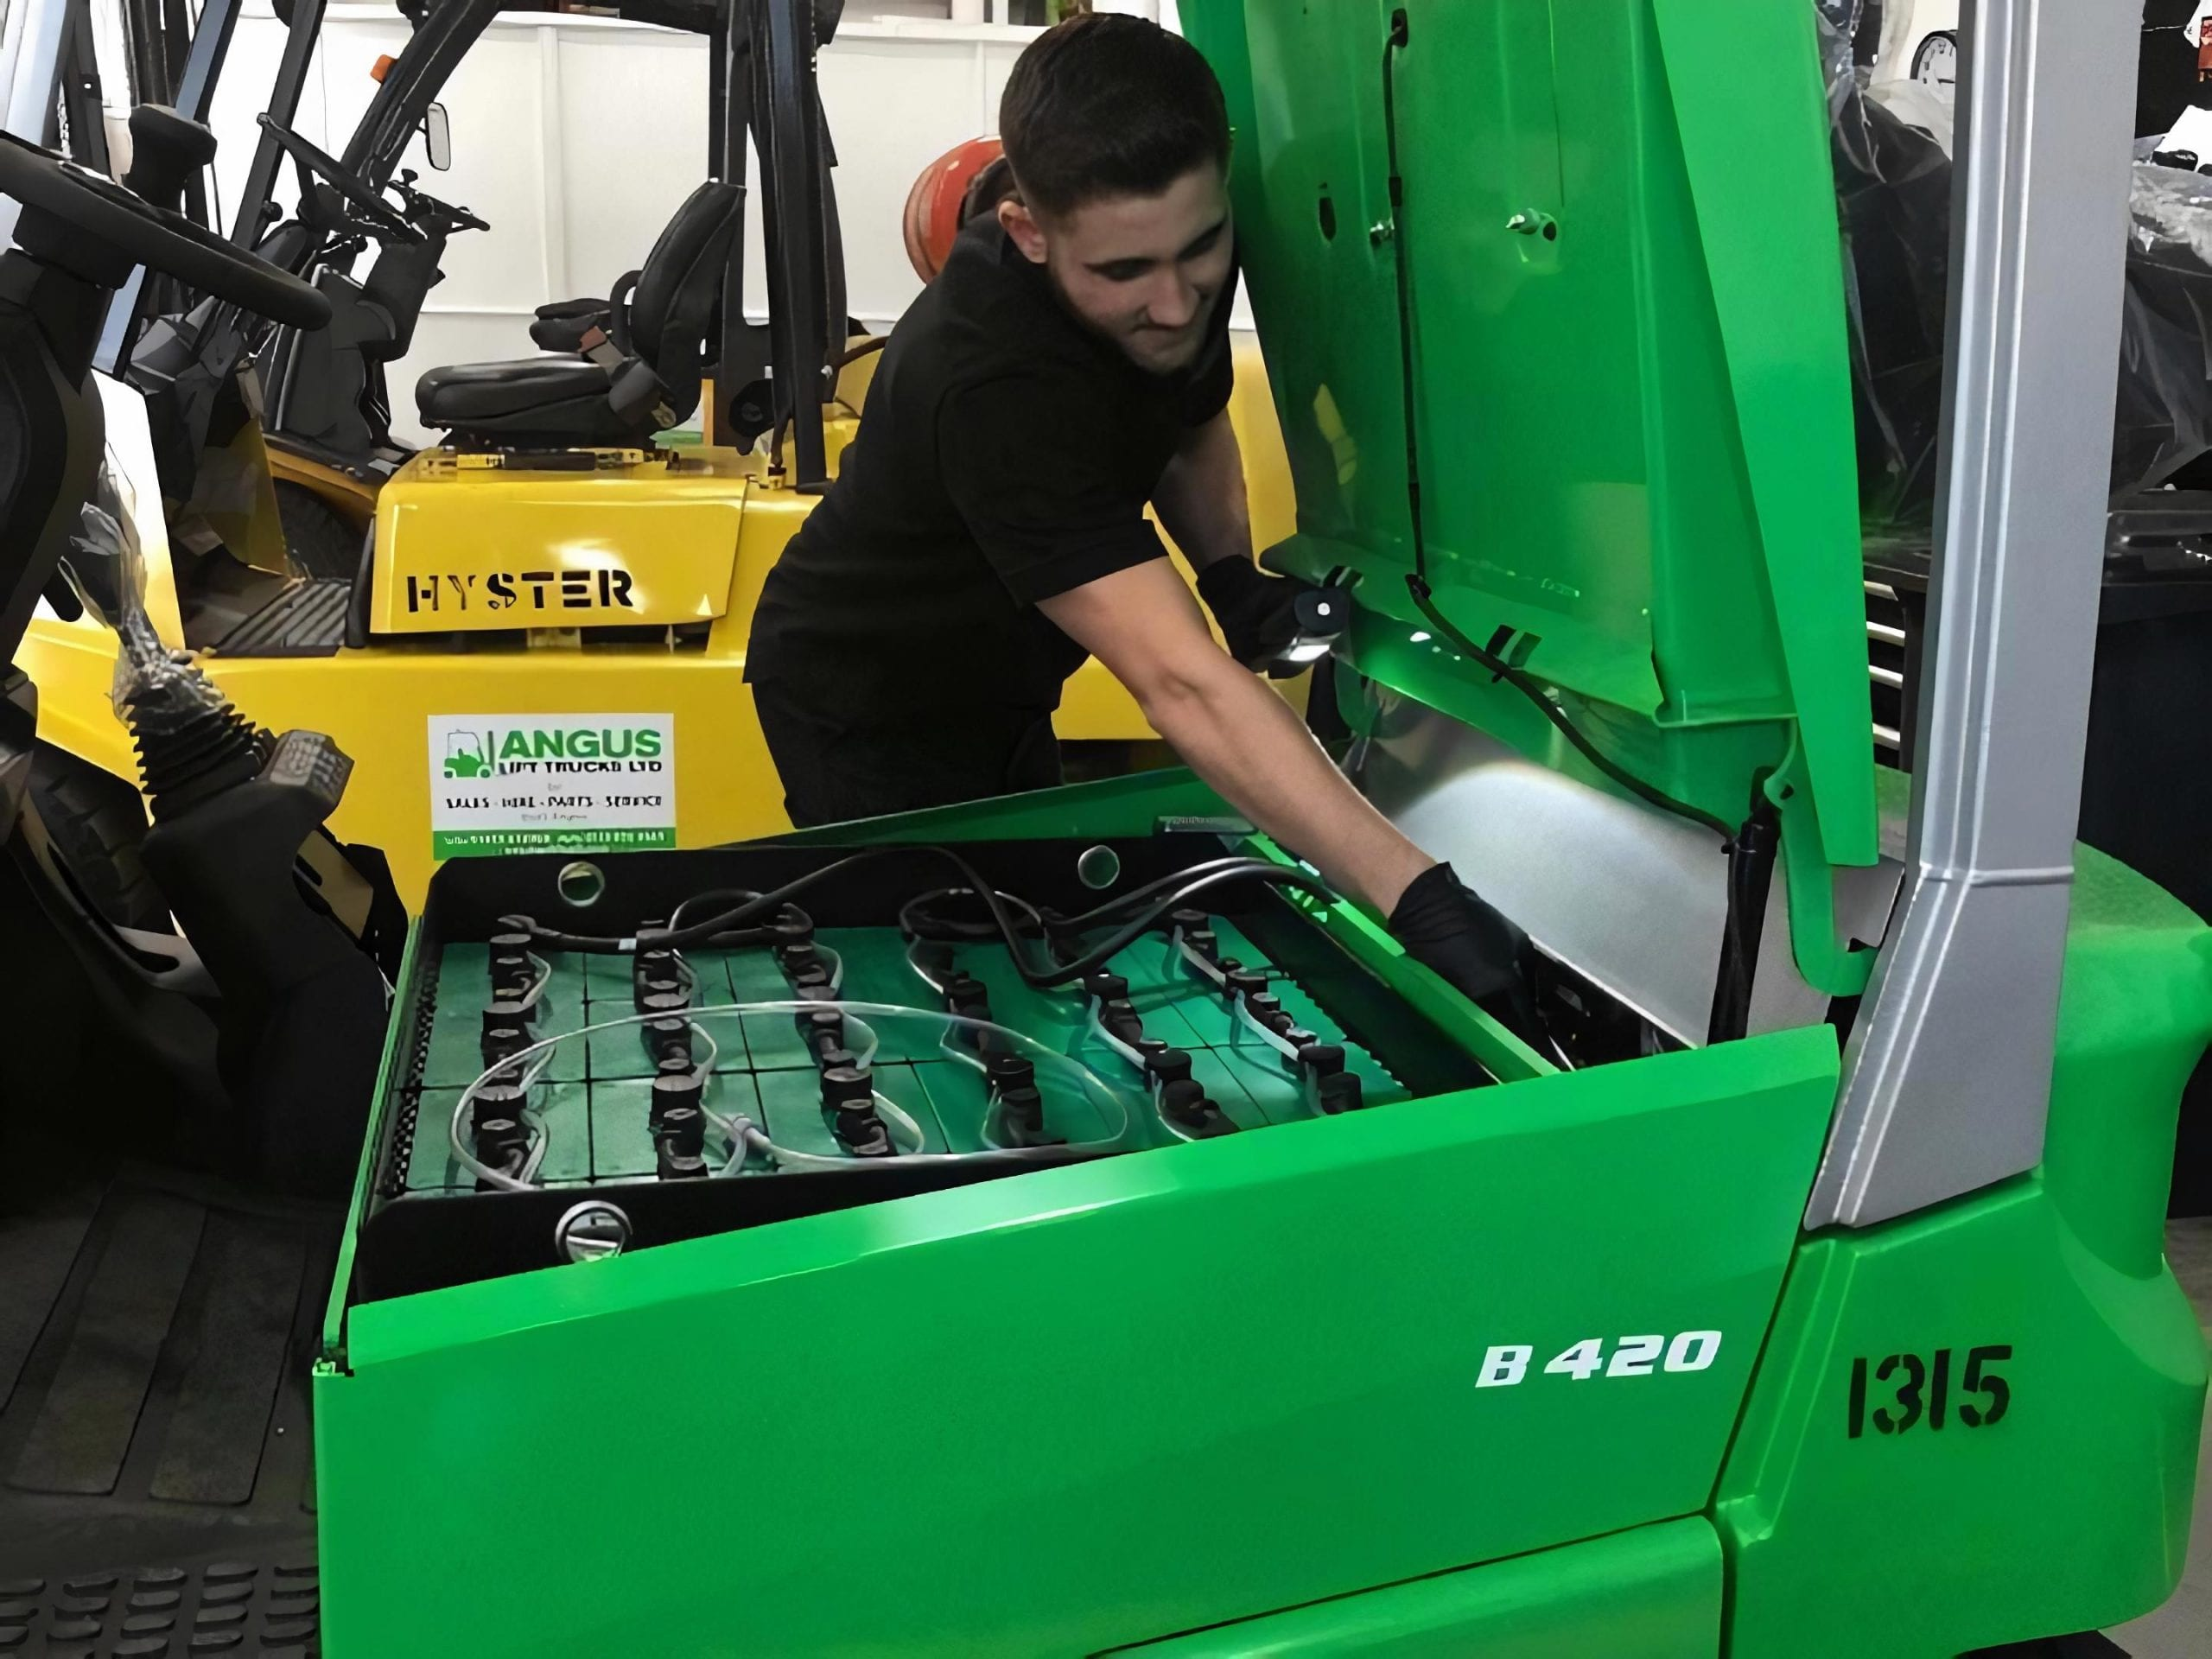 Forklifts Service, Maintenance and Repairs across the UK, in areas like Leicester, Northampton, Nottingham, Derby, Birmingham, Warwick, East Midlands, West Midlands